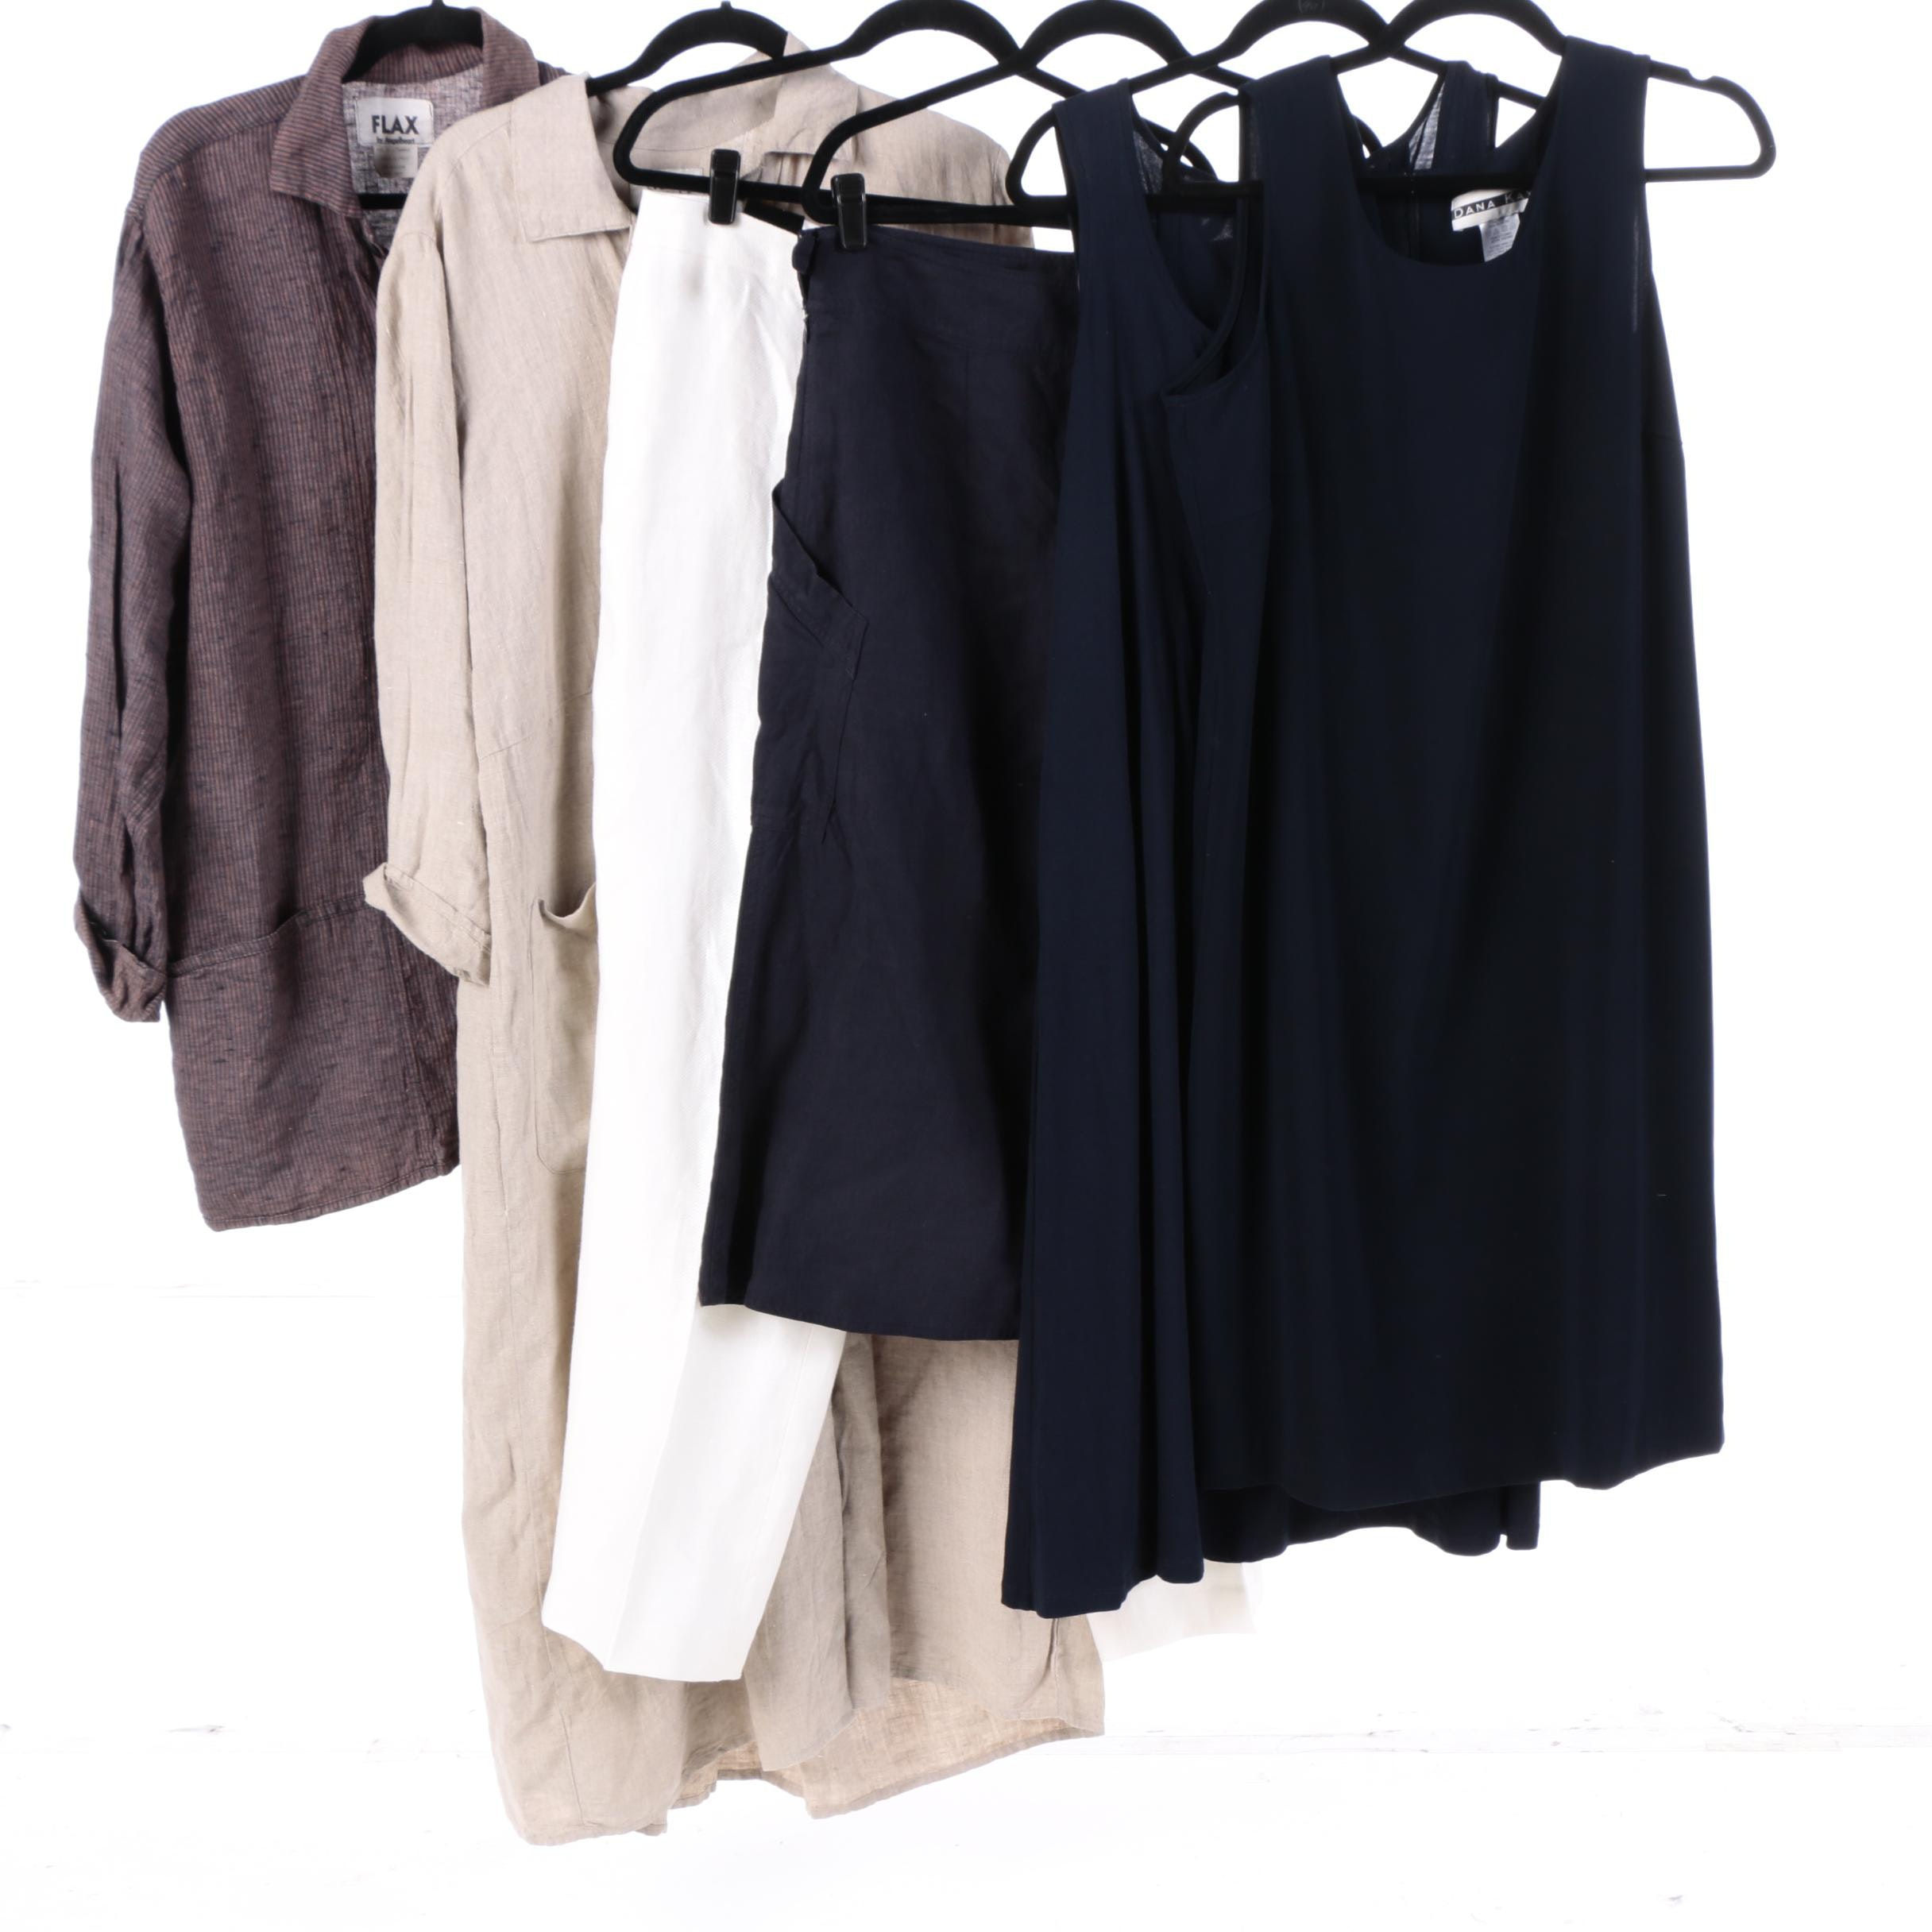 Women's Clothing Separates Including Jones New York, Dana Kay, Eileen Fisher